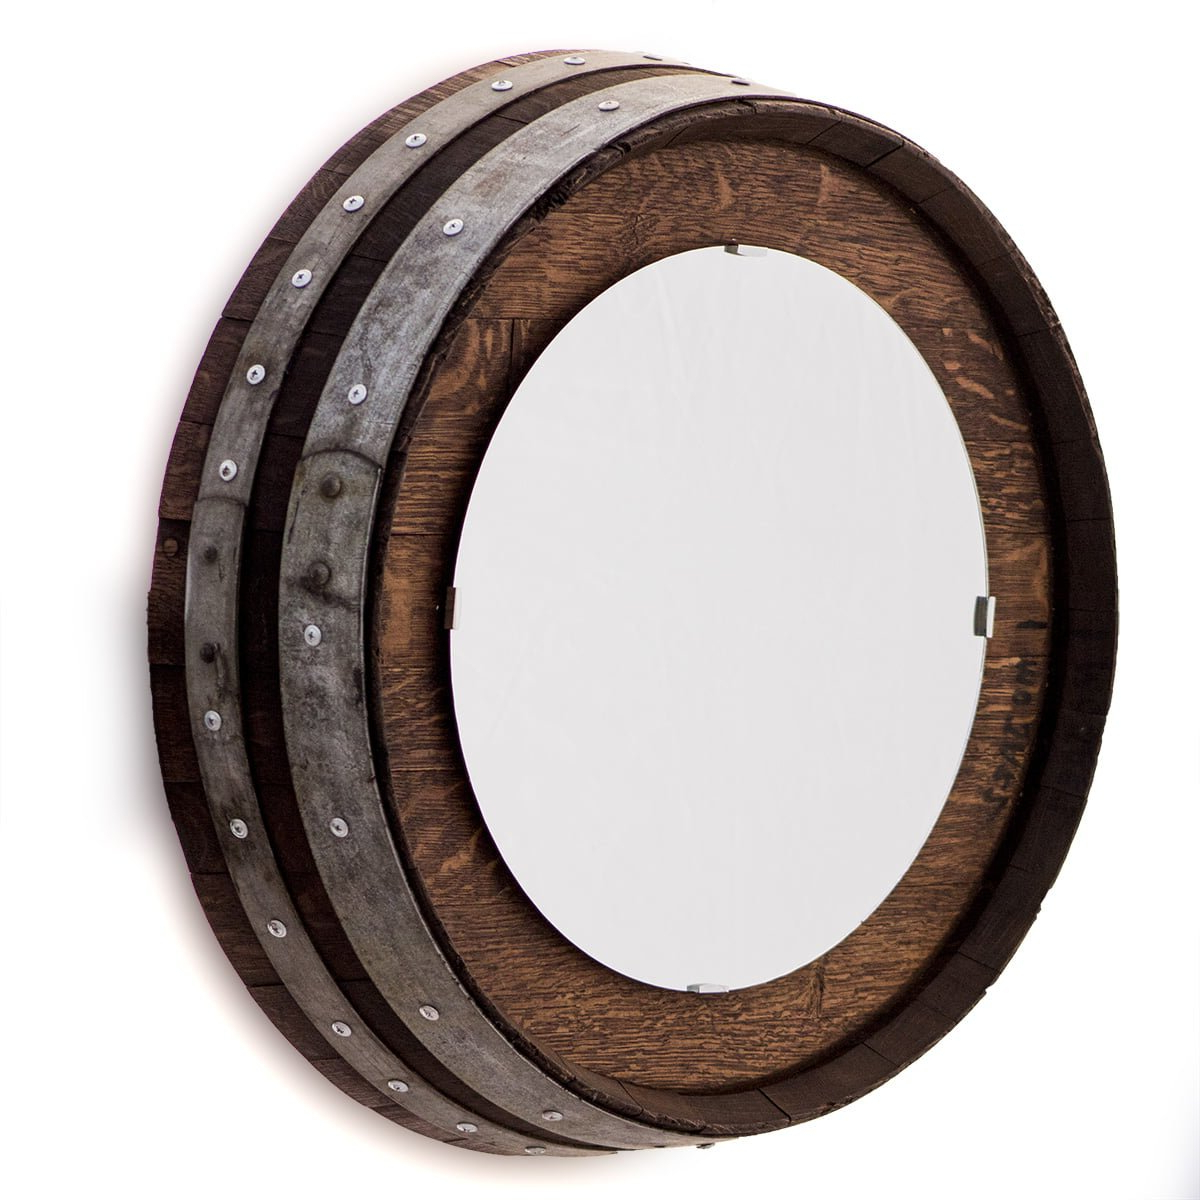 Preferred Bem Decorative Wall Mirrors Inside Barrel End Wall Mirror With Staves (View 4 of 20)